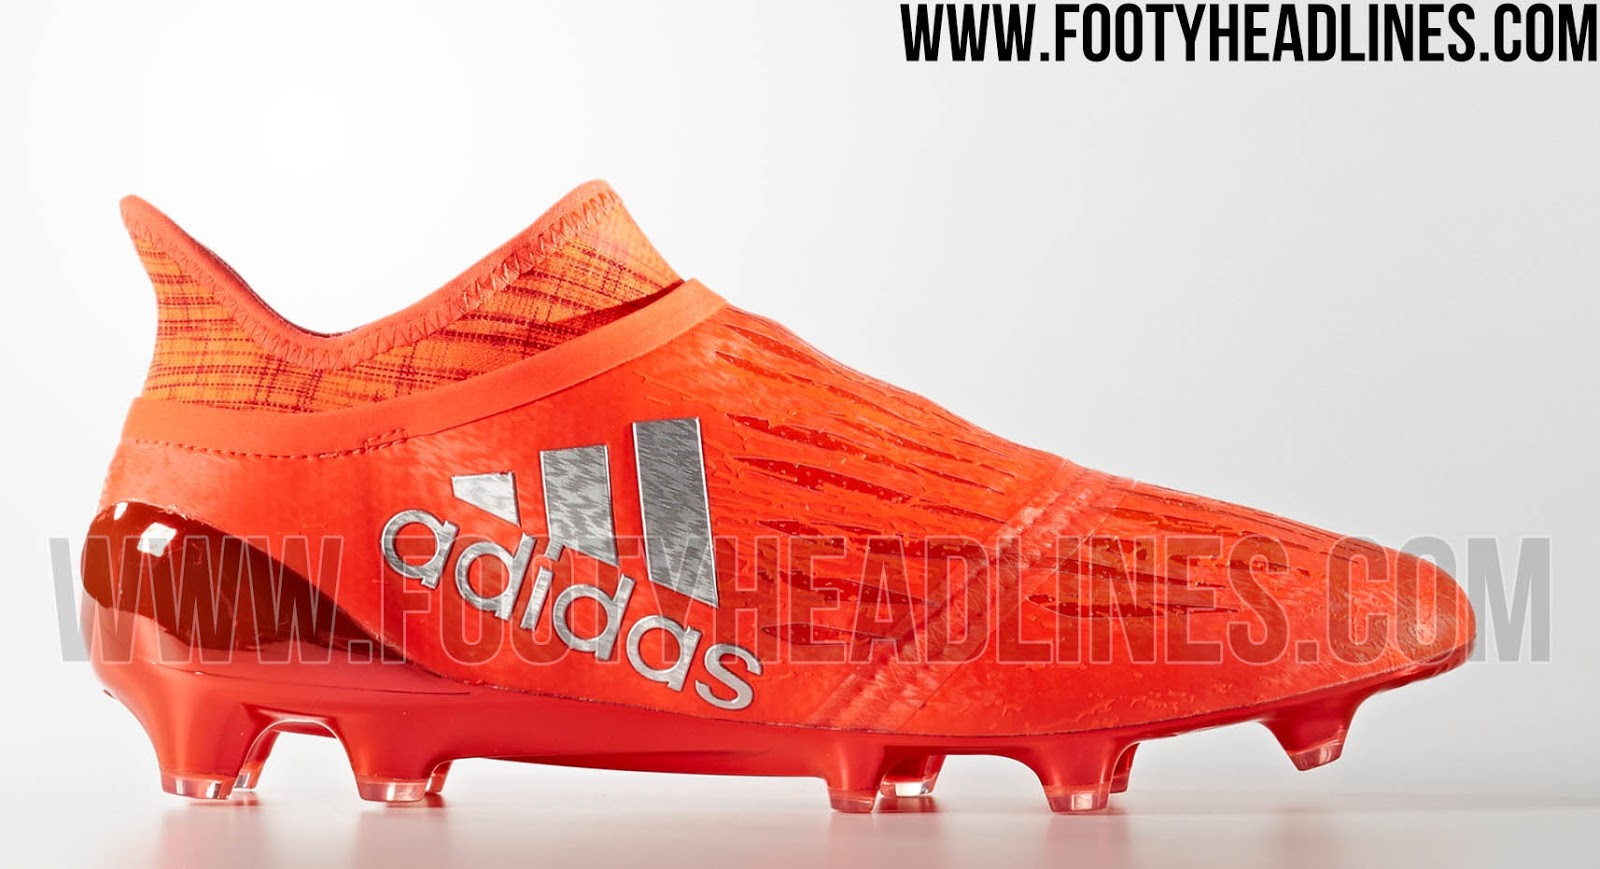 red adidas x 16 purechaos 2016 boots released footy. Black Bedroom Furniture Sets. Home Design Ideas